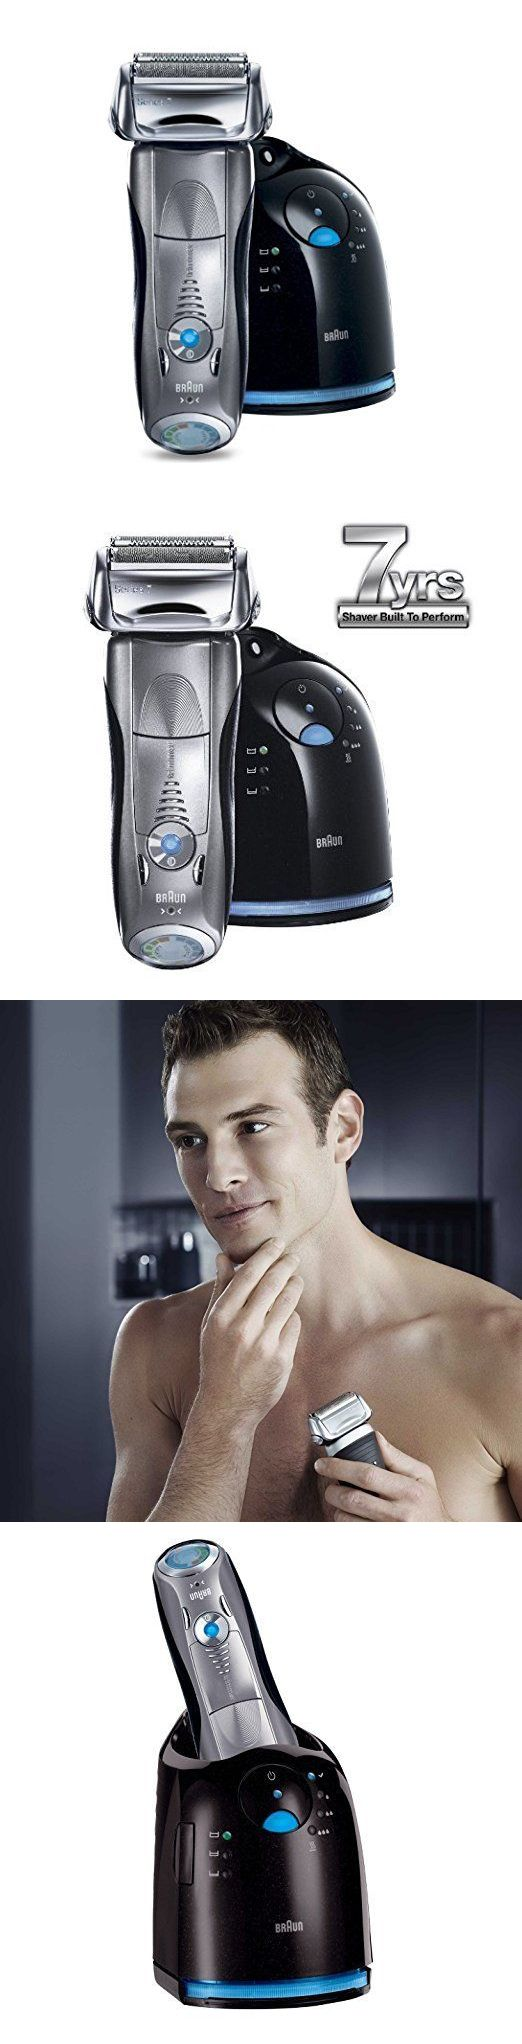 Mens Shavers: Braun Series 7 790Cc Cordless Electric Foil Shaver For Men With Clean And Charge -> BUY IT NOW ONLY: $158.5 on eBay!